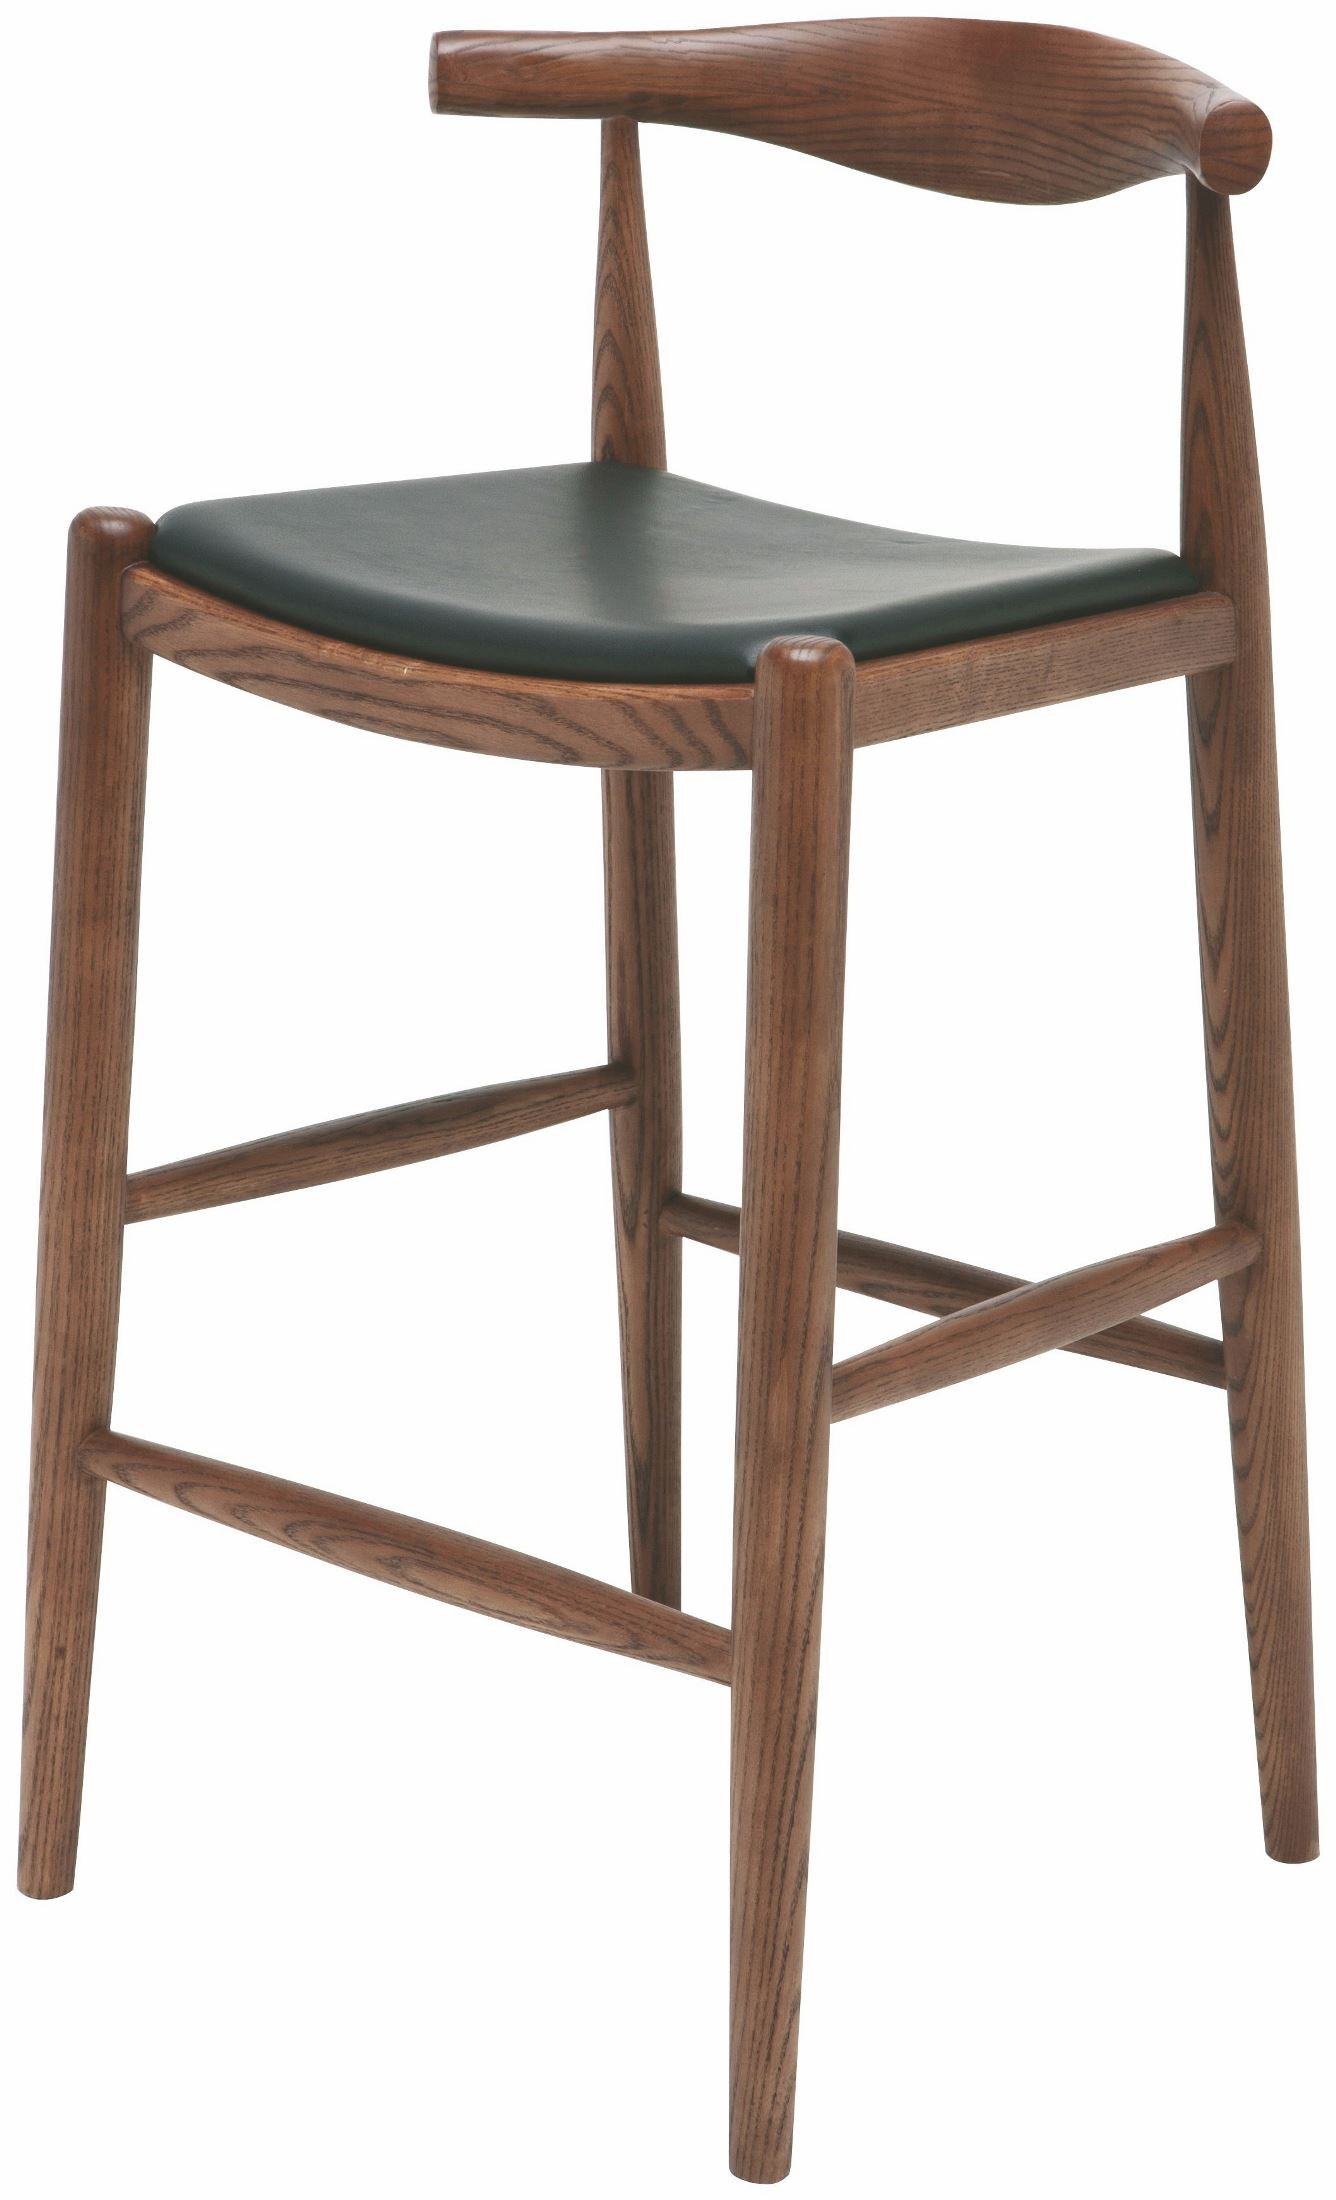 Maja Walnut Leather Counter Stool Hgem550 Nuevo